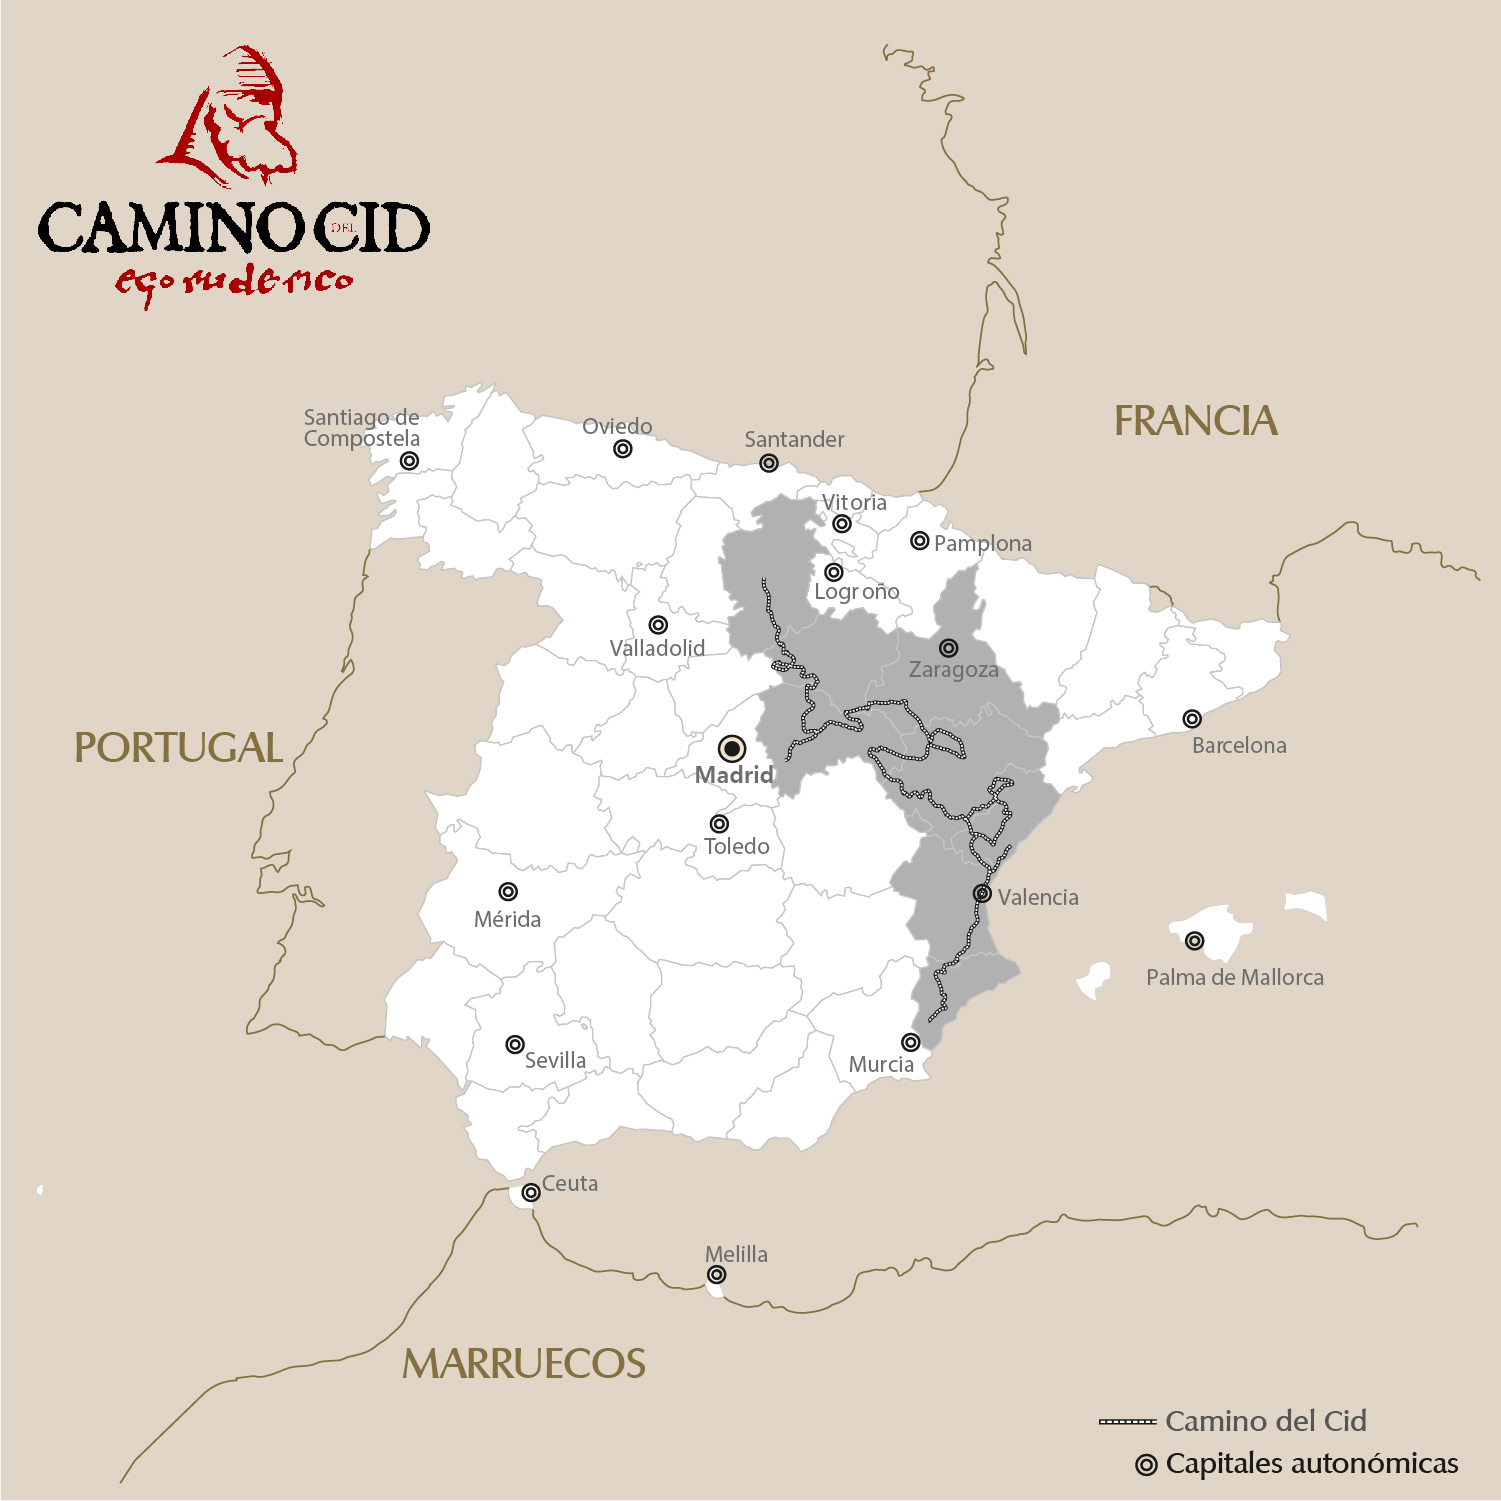 Mapa Camino del Cid / The way of El Cid Map - Pulse en la imagen para ampliar / Click to zoom